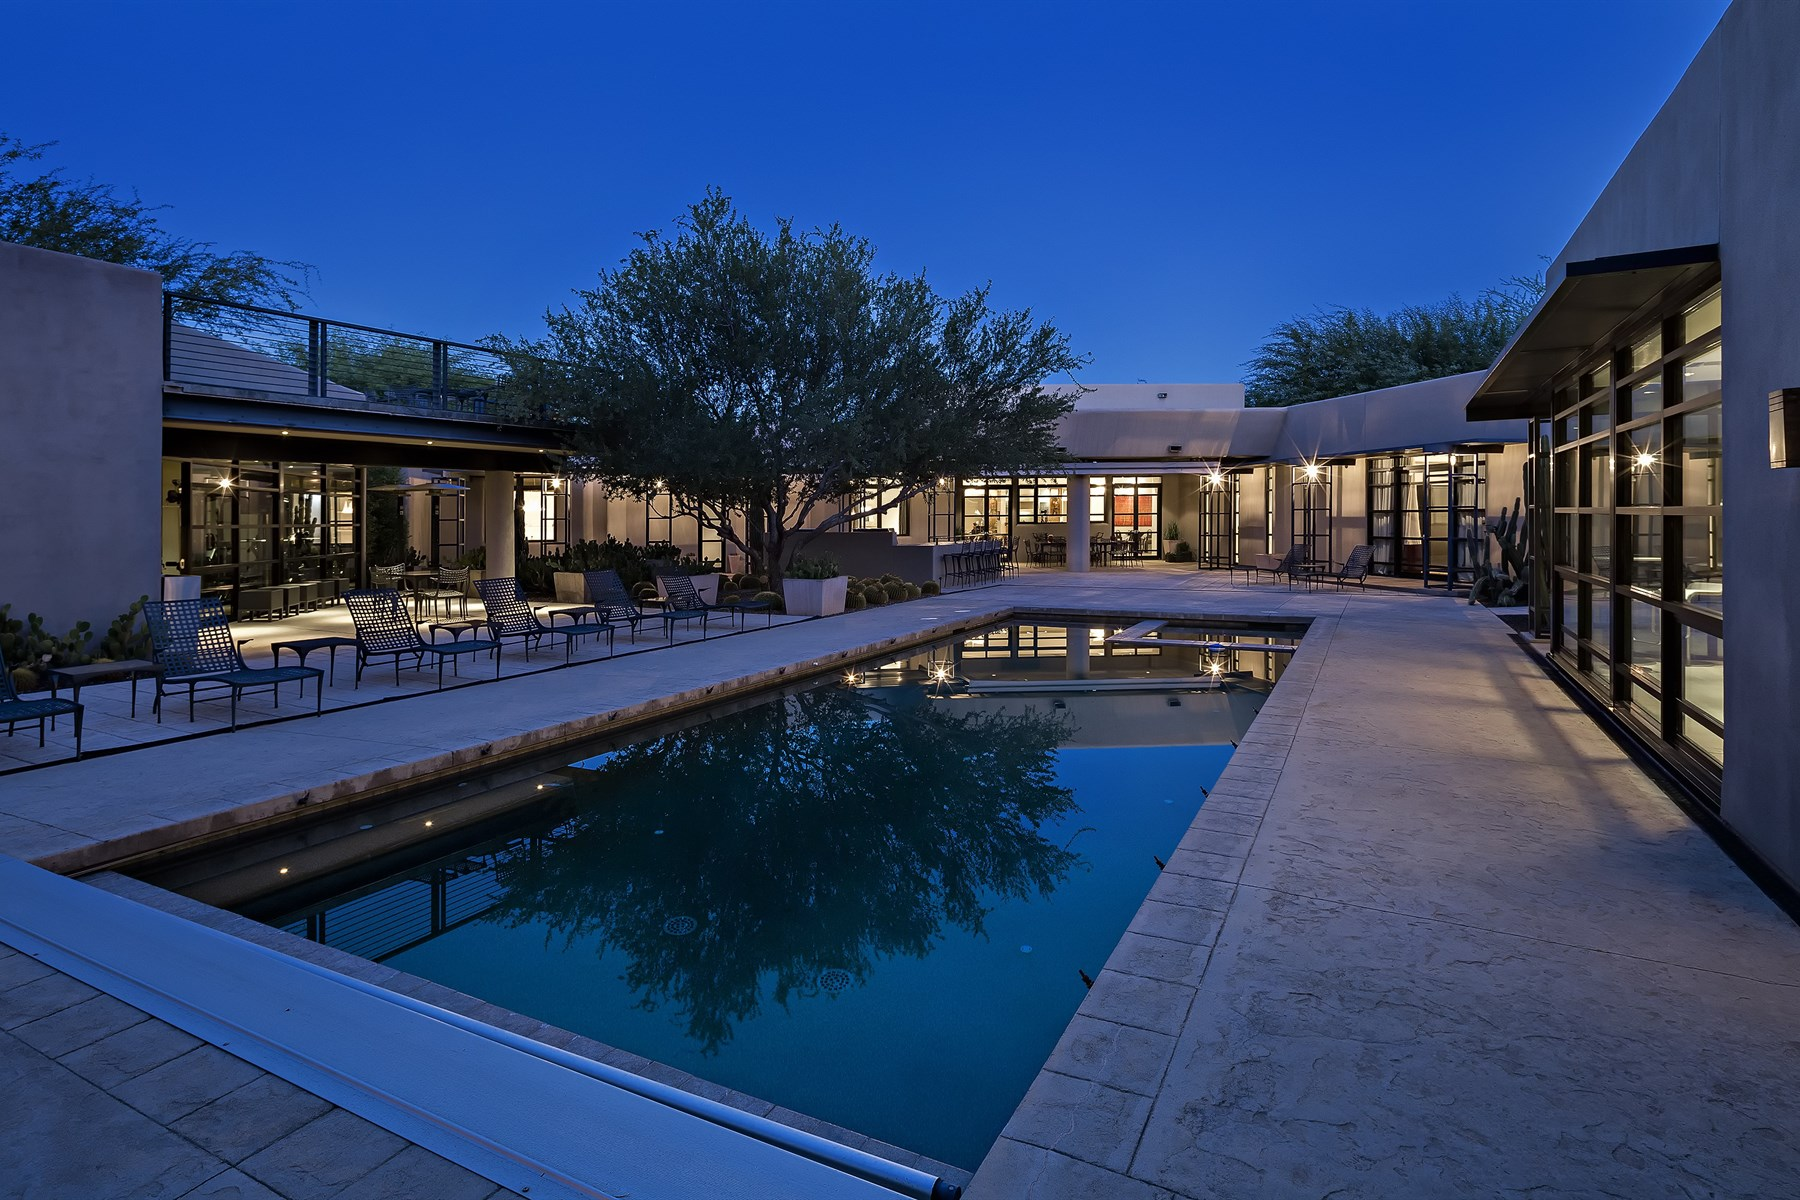 Villa per Vendita alle ore sophisticated cosmopolitan residence of modern architecture in La Vista 7824 N 65TH ST Paradise Valley, Arizona, 85253 Stati Uniti